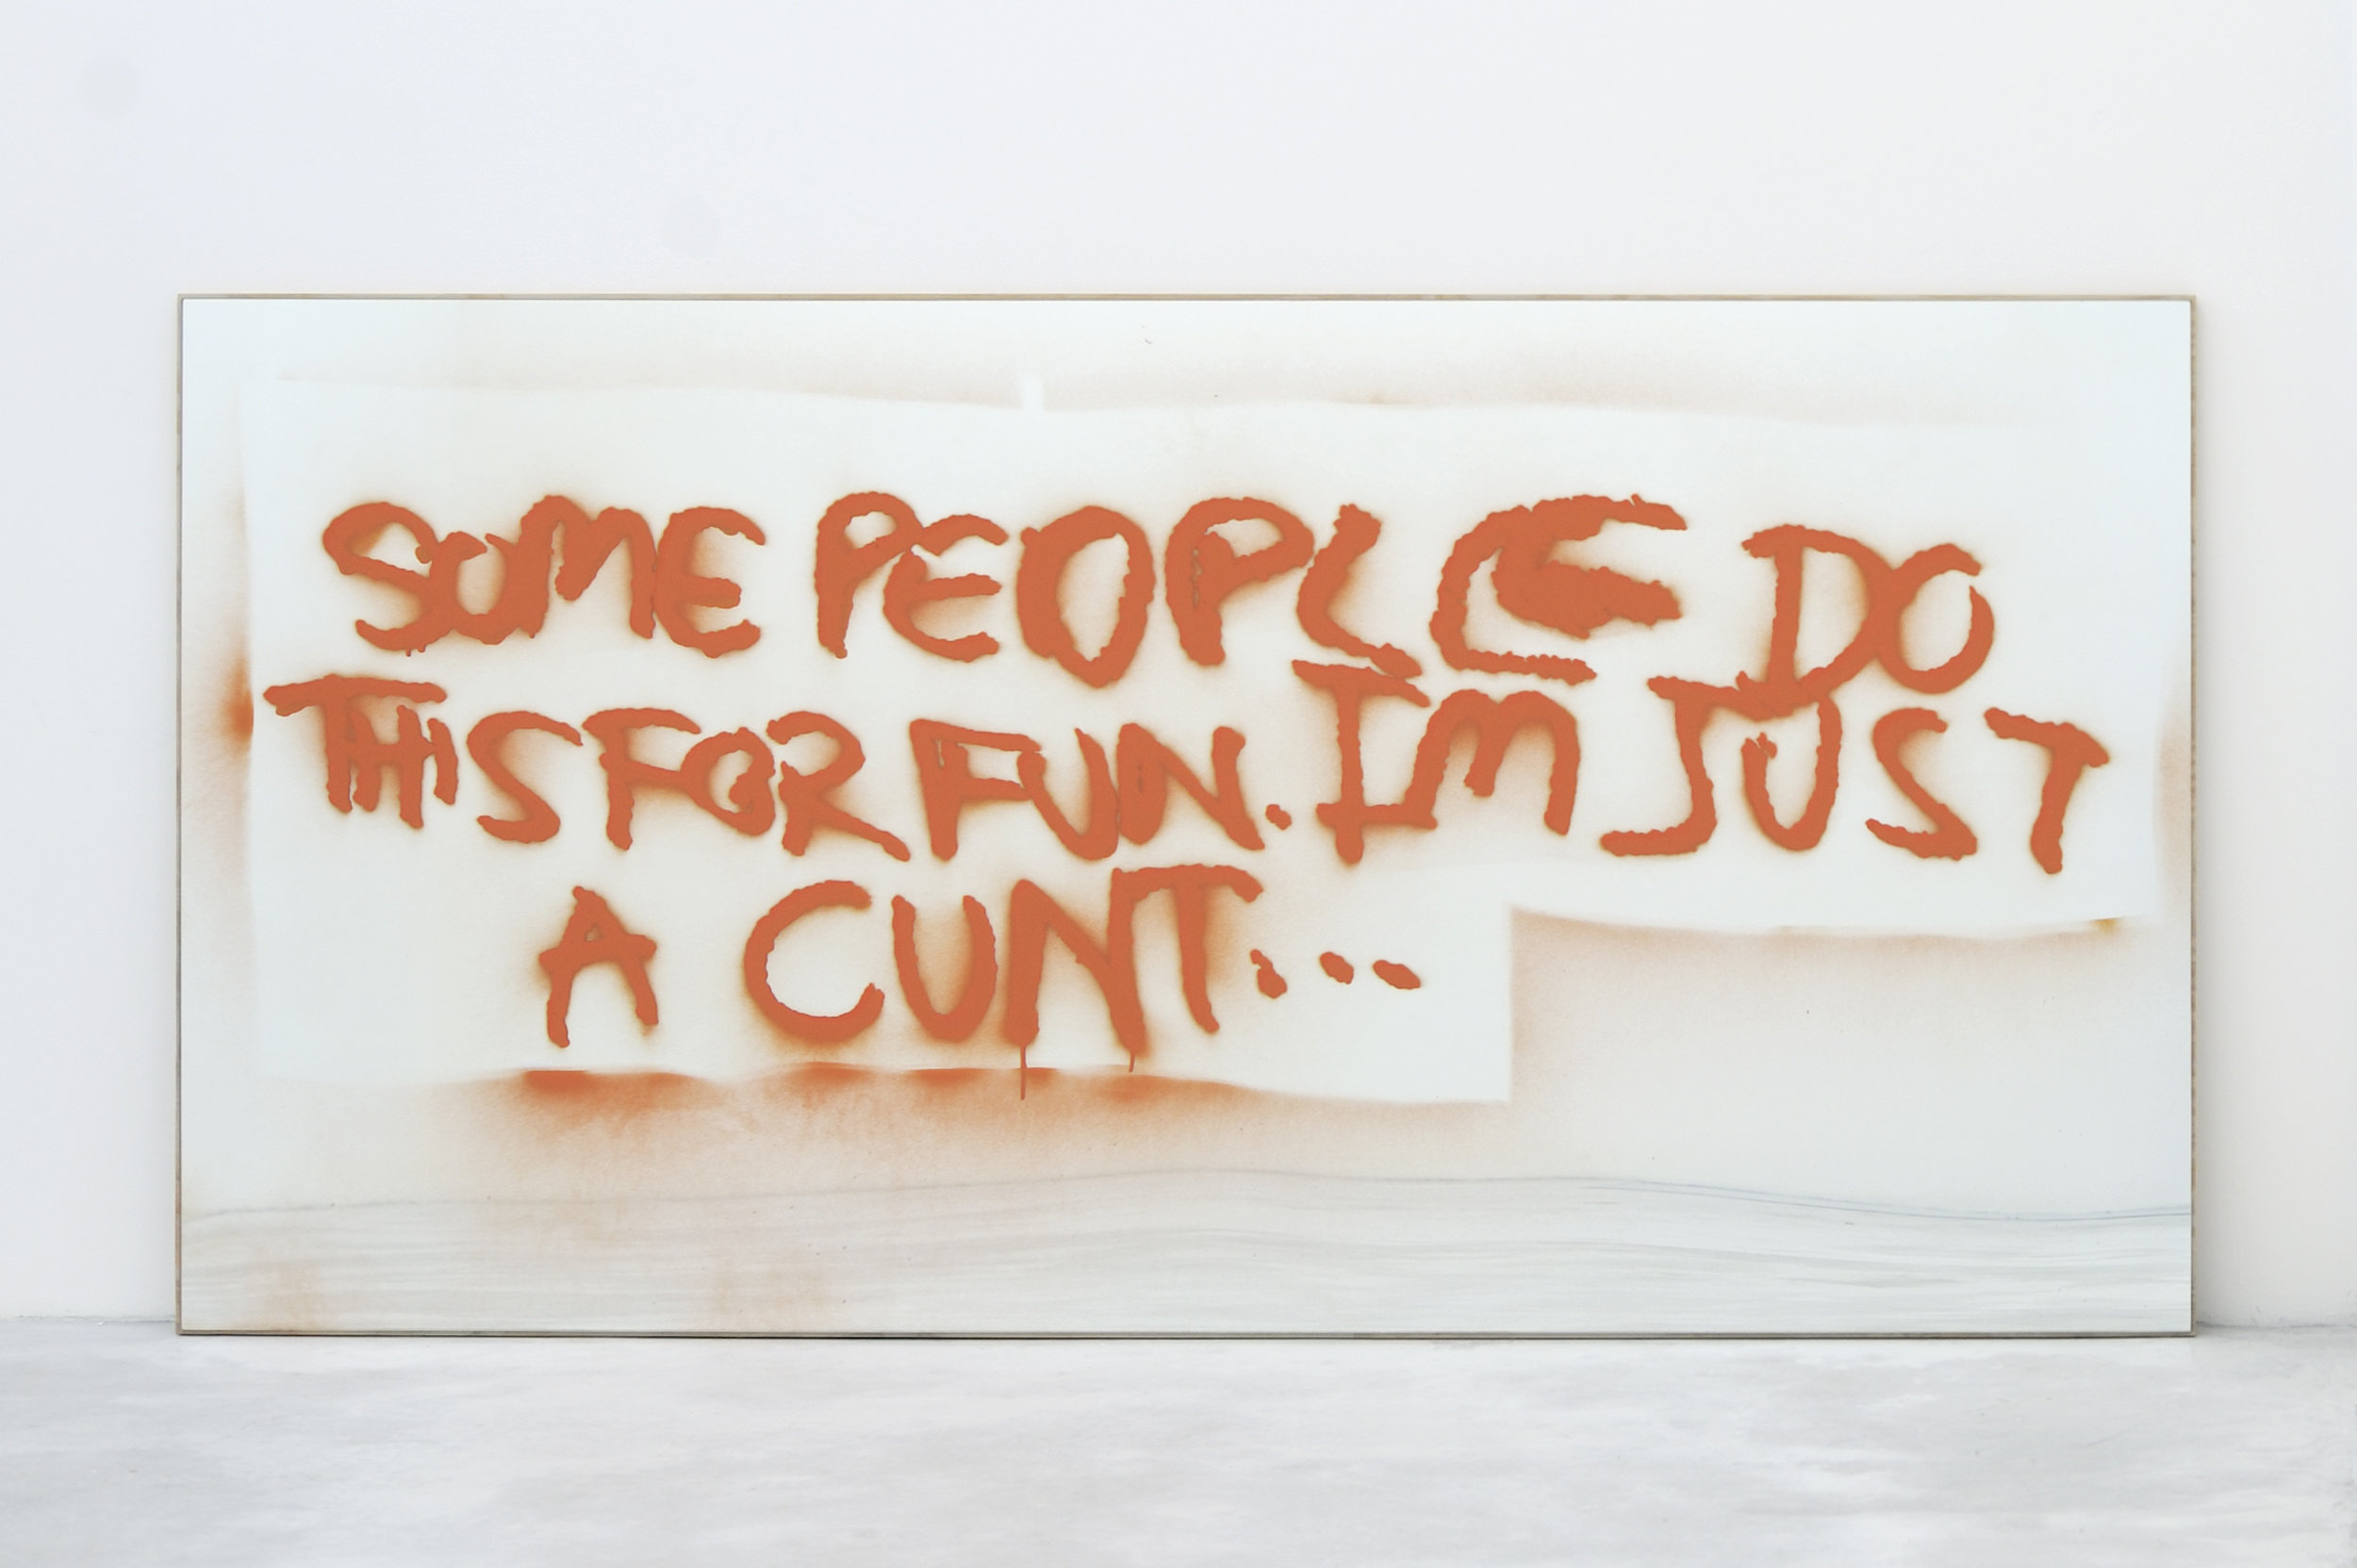 Sam Durant, Some People Do This For Fun. I'm Just A Cunt..., 2010 spray enamel on mirror, plywood 122 x 244 x 2,5 cm - 48 x 96 x 1 inches